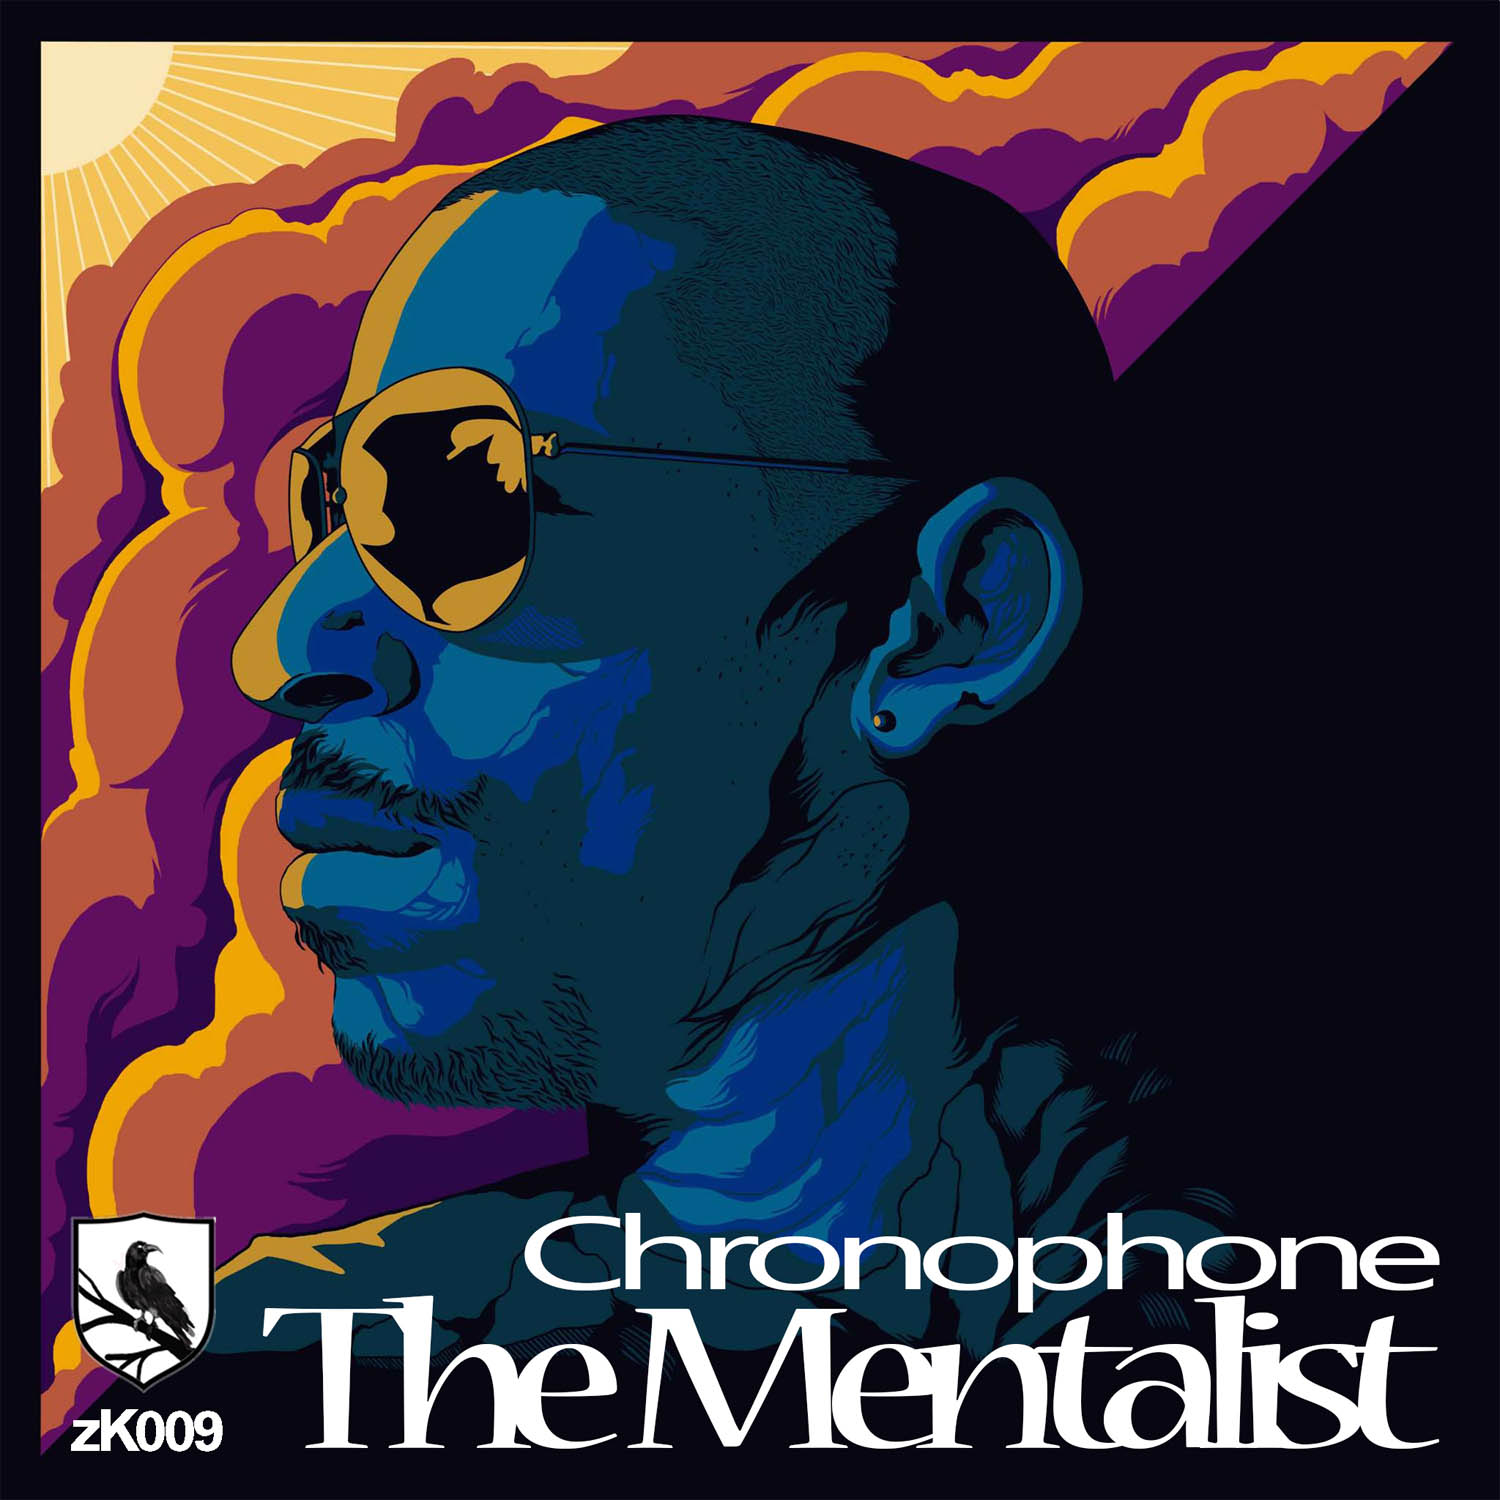 ZK 009 Official Release The Mentalist EP - Chronophone